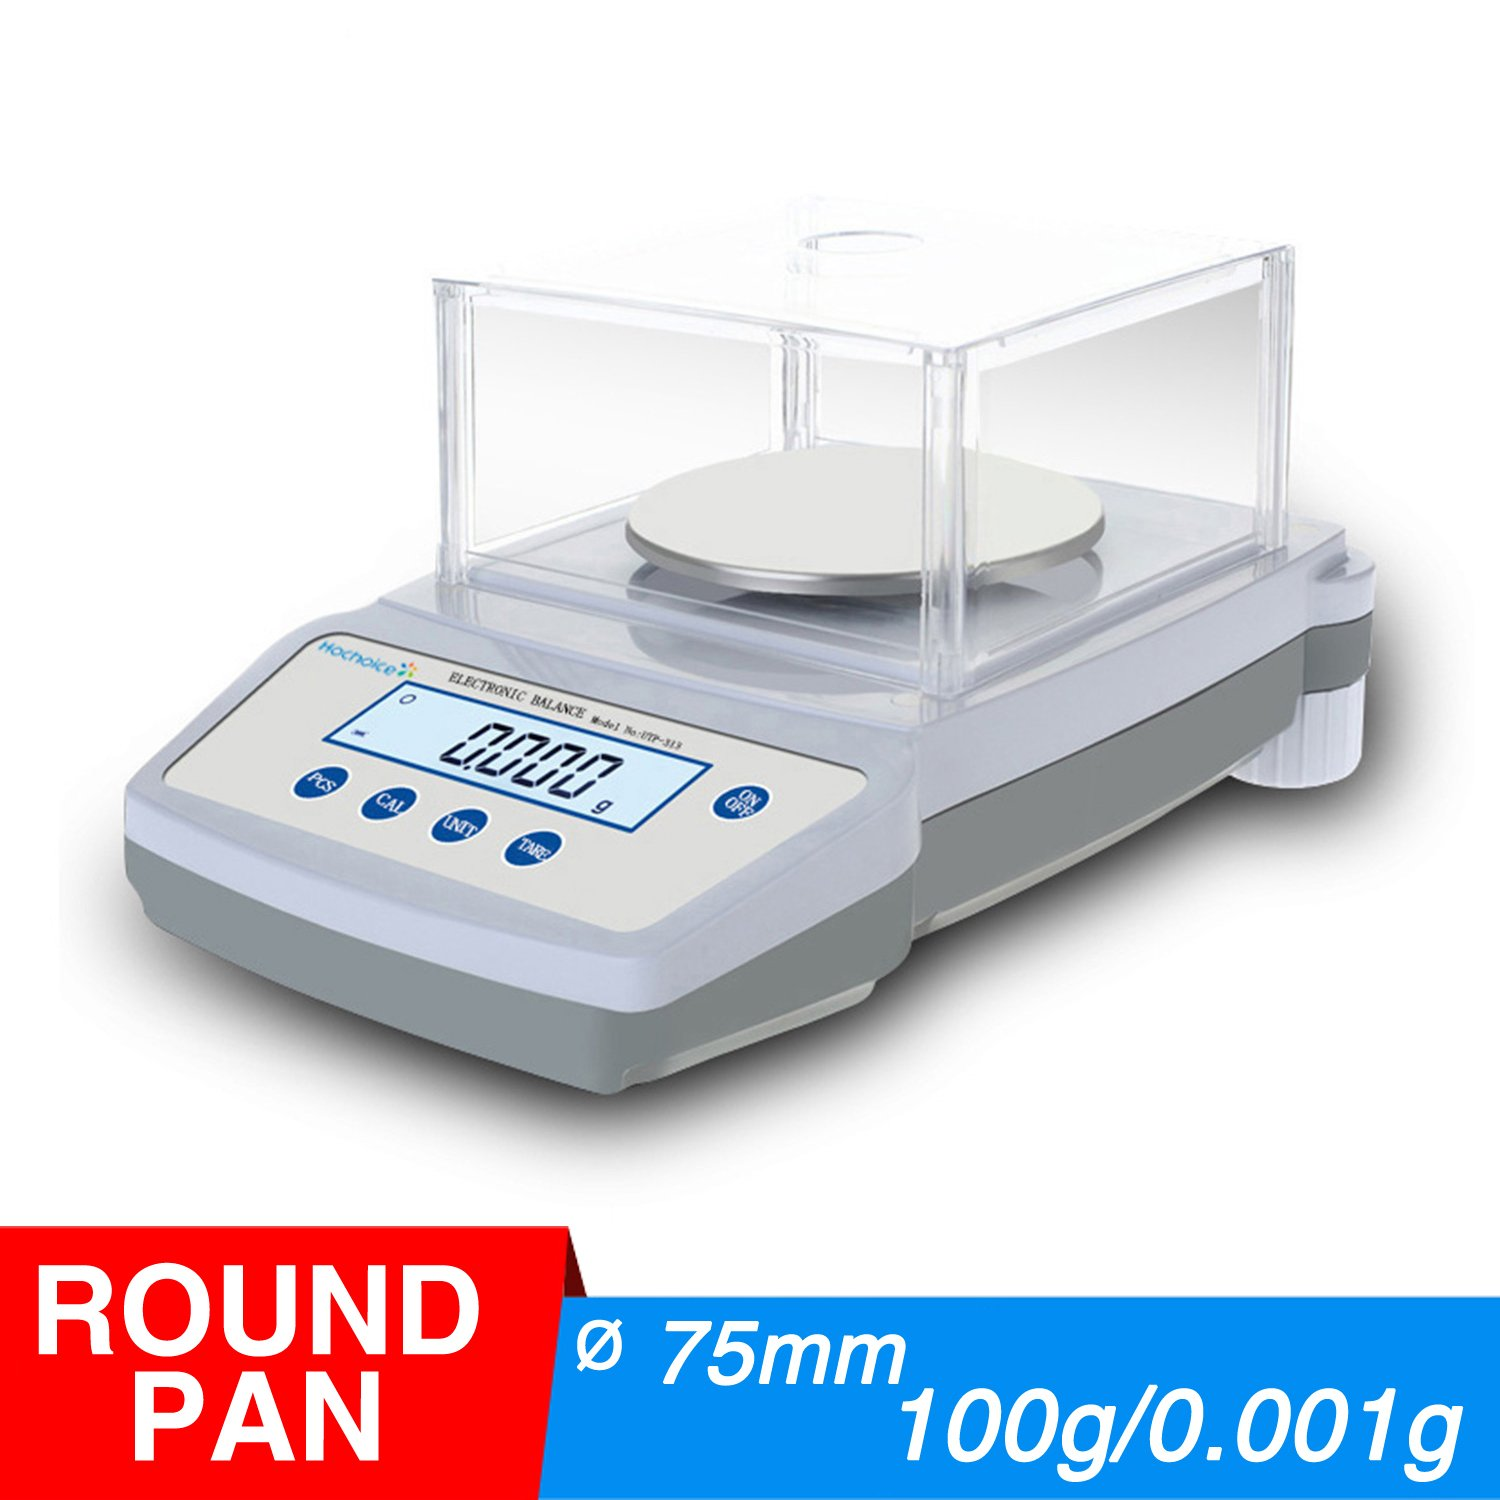 Hochoice Accuracy 0.001g Precision Laboratory Electronic Analytical Balance,for Industrial, Agricultural, Scientific Research(Round pan) (Max Capacity:100g, Accuracy:0.001g)